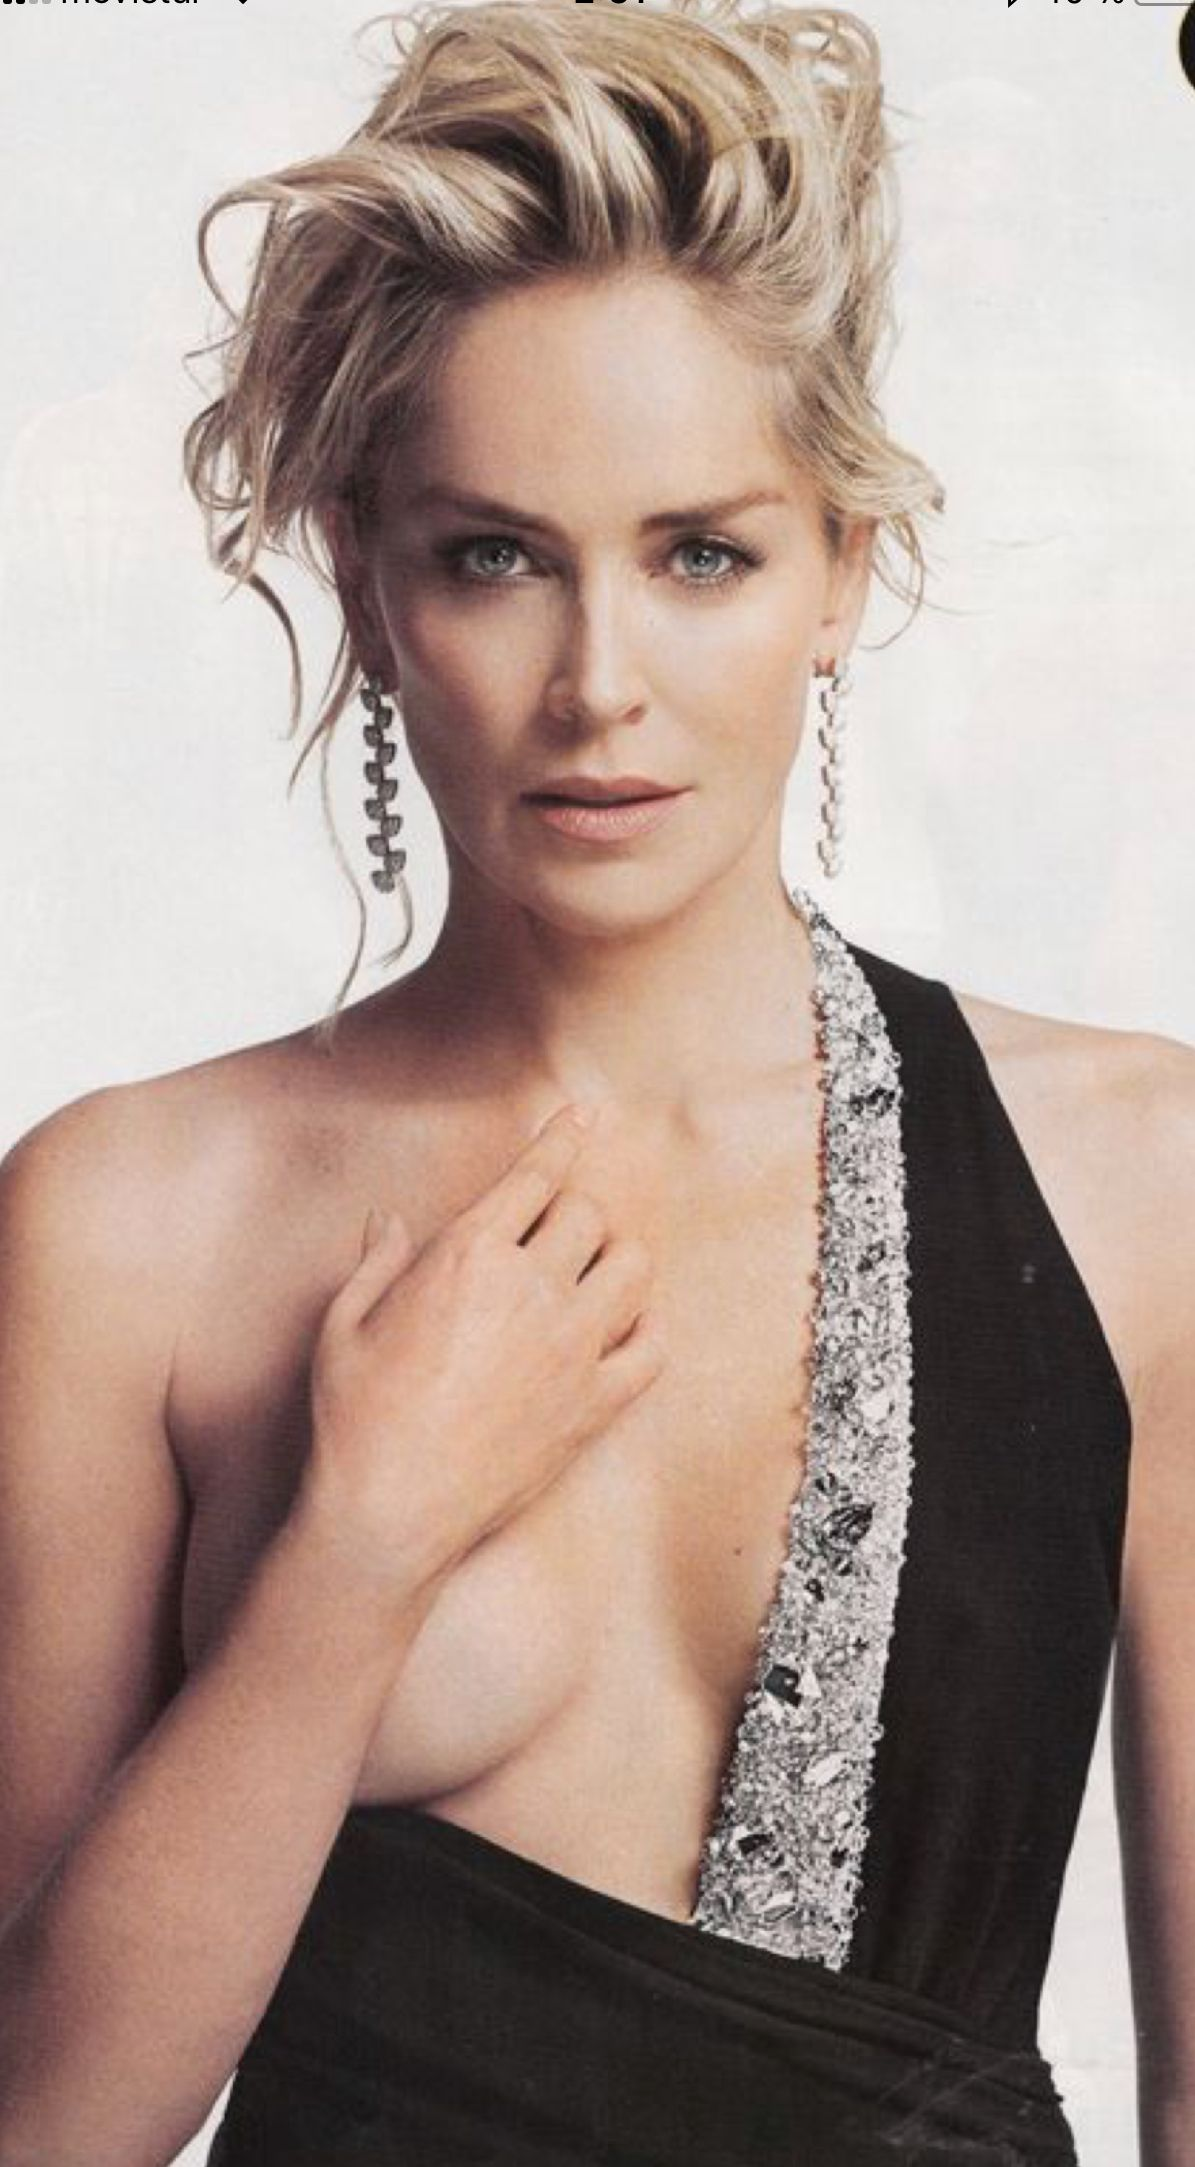 Cleavage Sharon Stone nudes (86 photos), Pussy, Fappening, Boobs, lingerie 2017